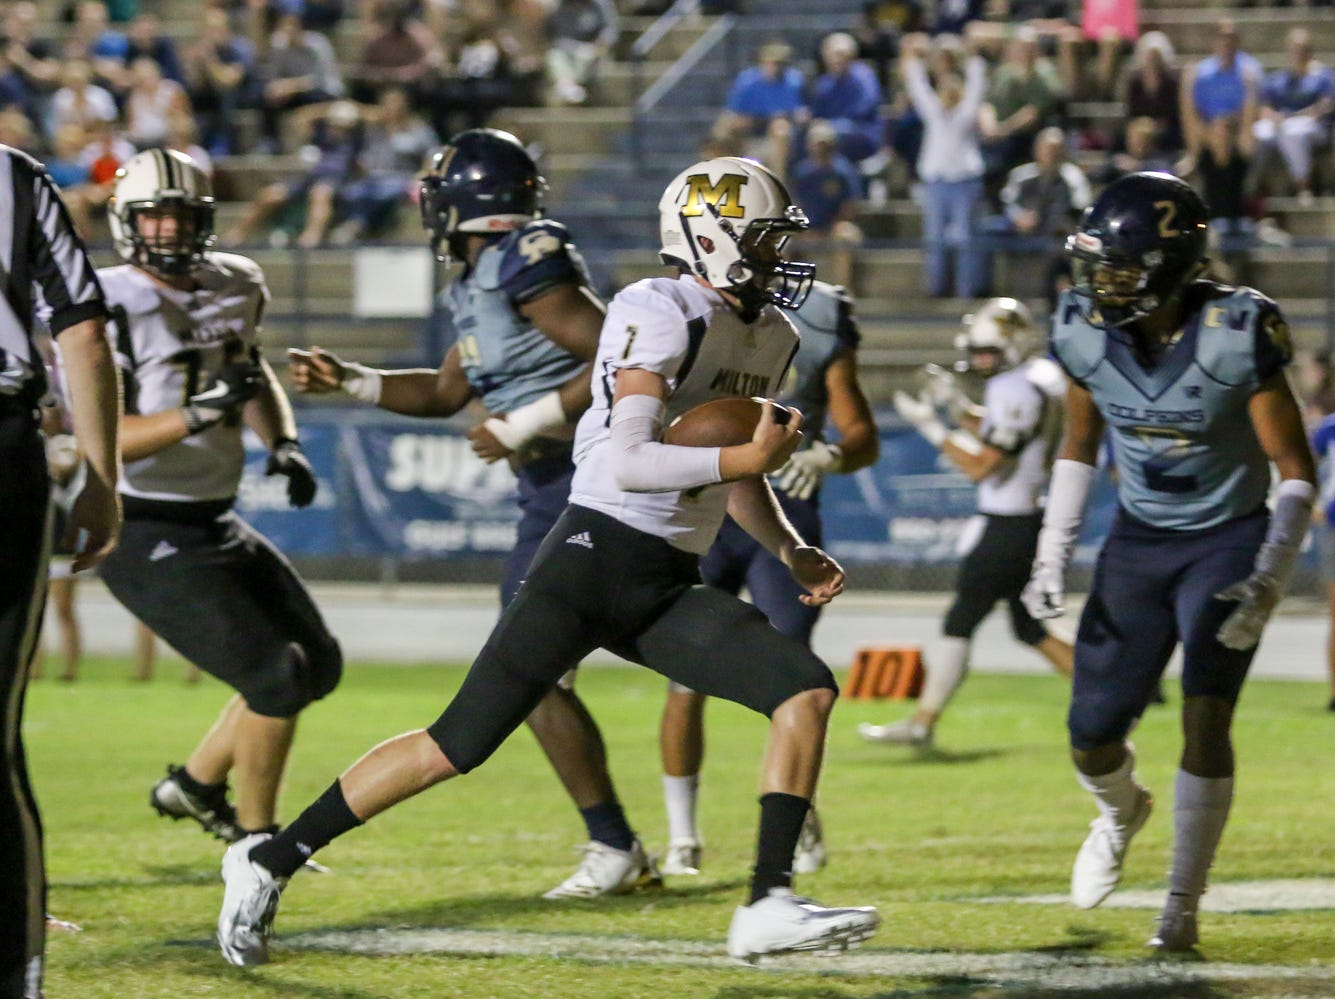 Milton quarterback Tyler Buchanan (7) rushes in for a touchdown against the Dolphins in the District 2-6A game at Gulf Breeze High School on Friday.